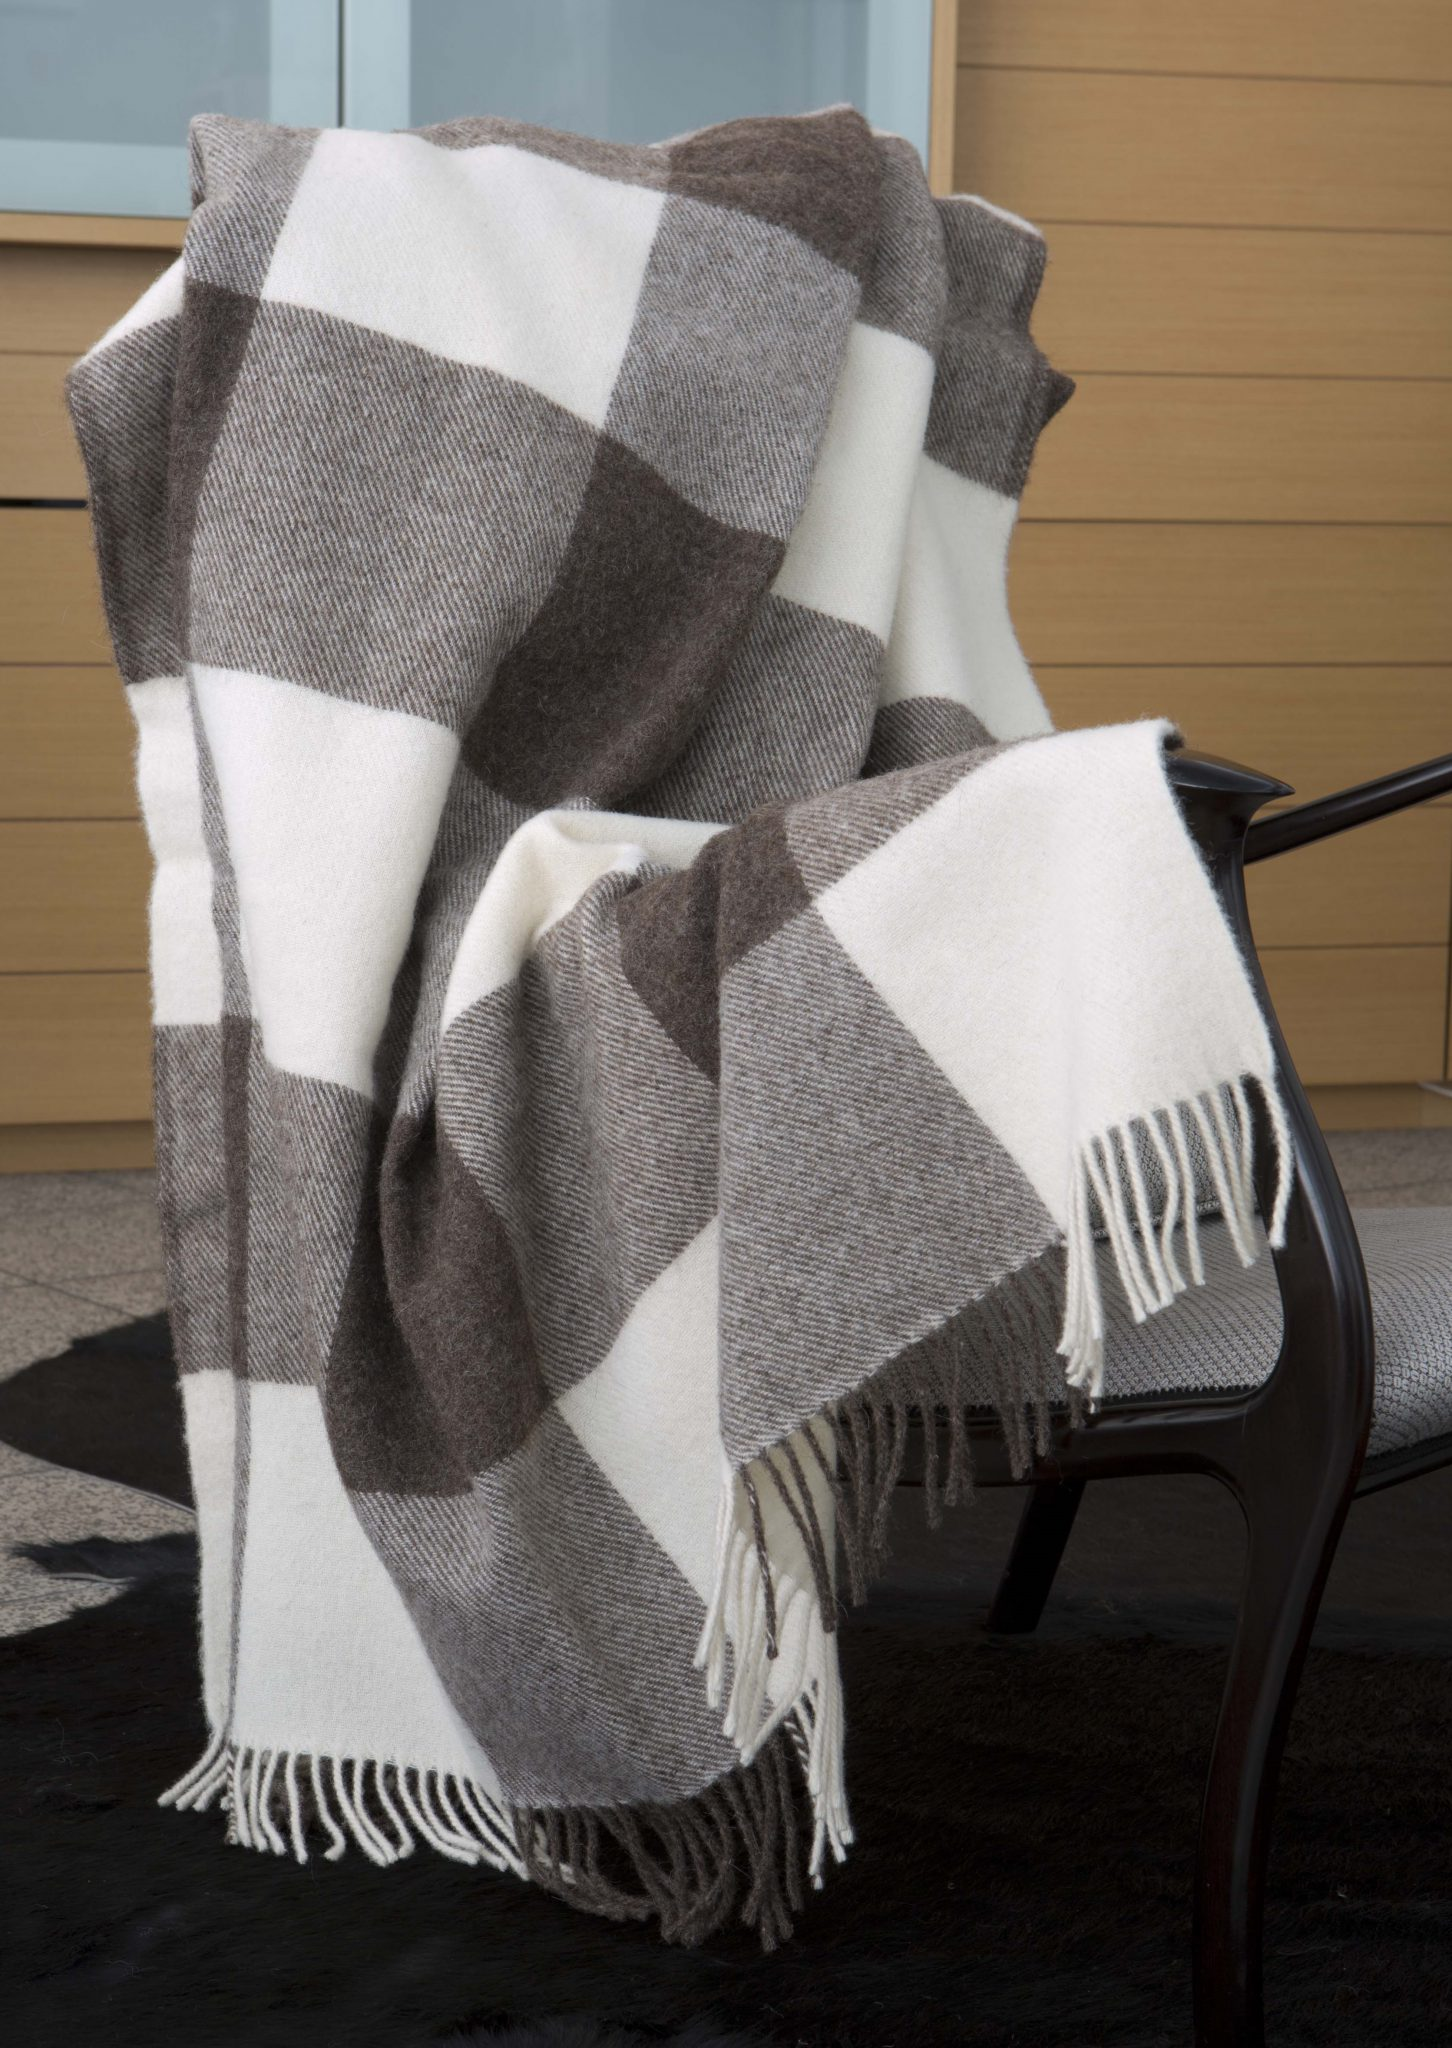 Blankets made with your pictures Auto FX - Official Site